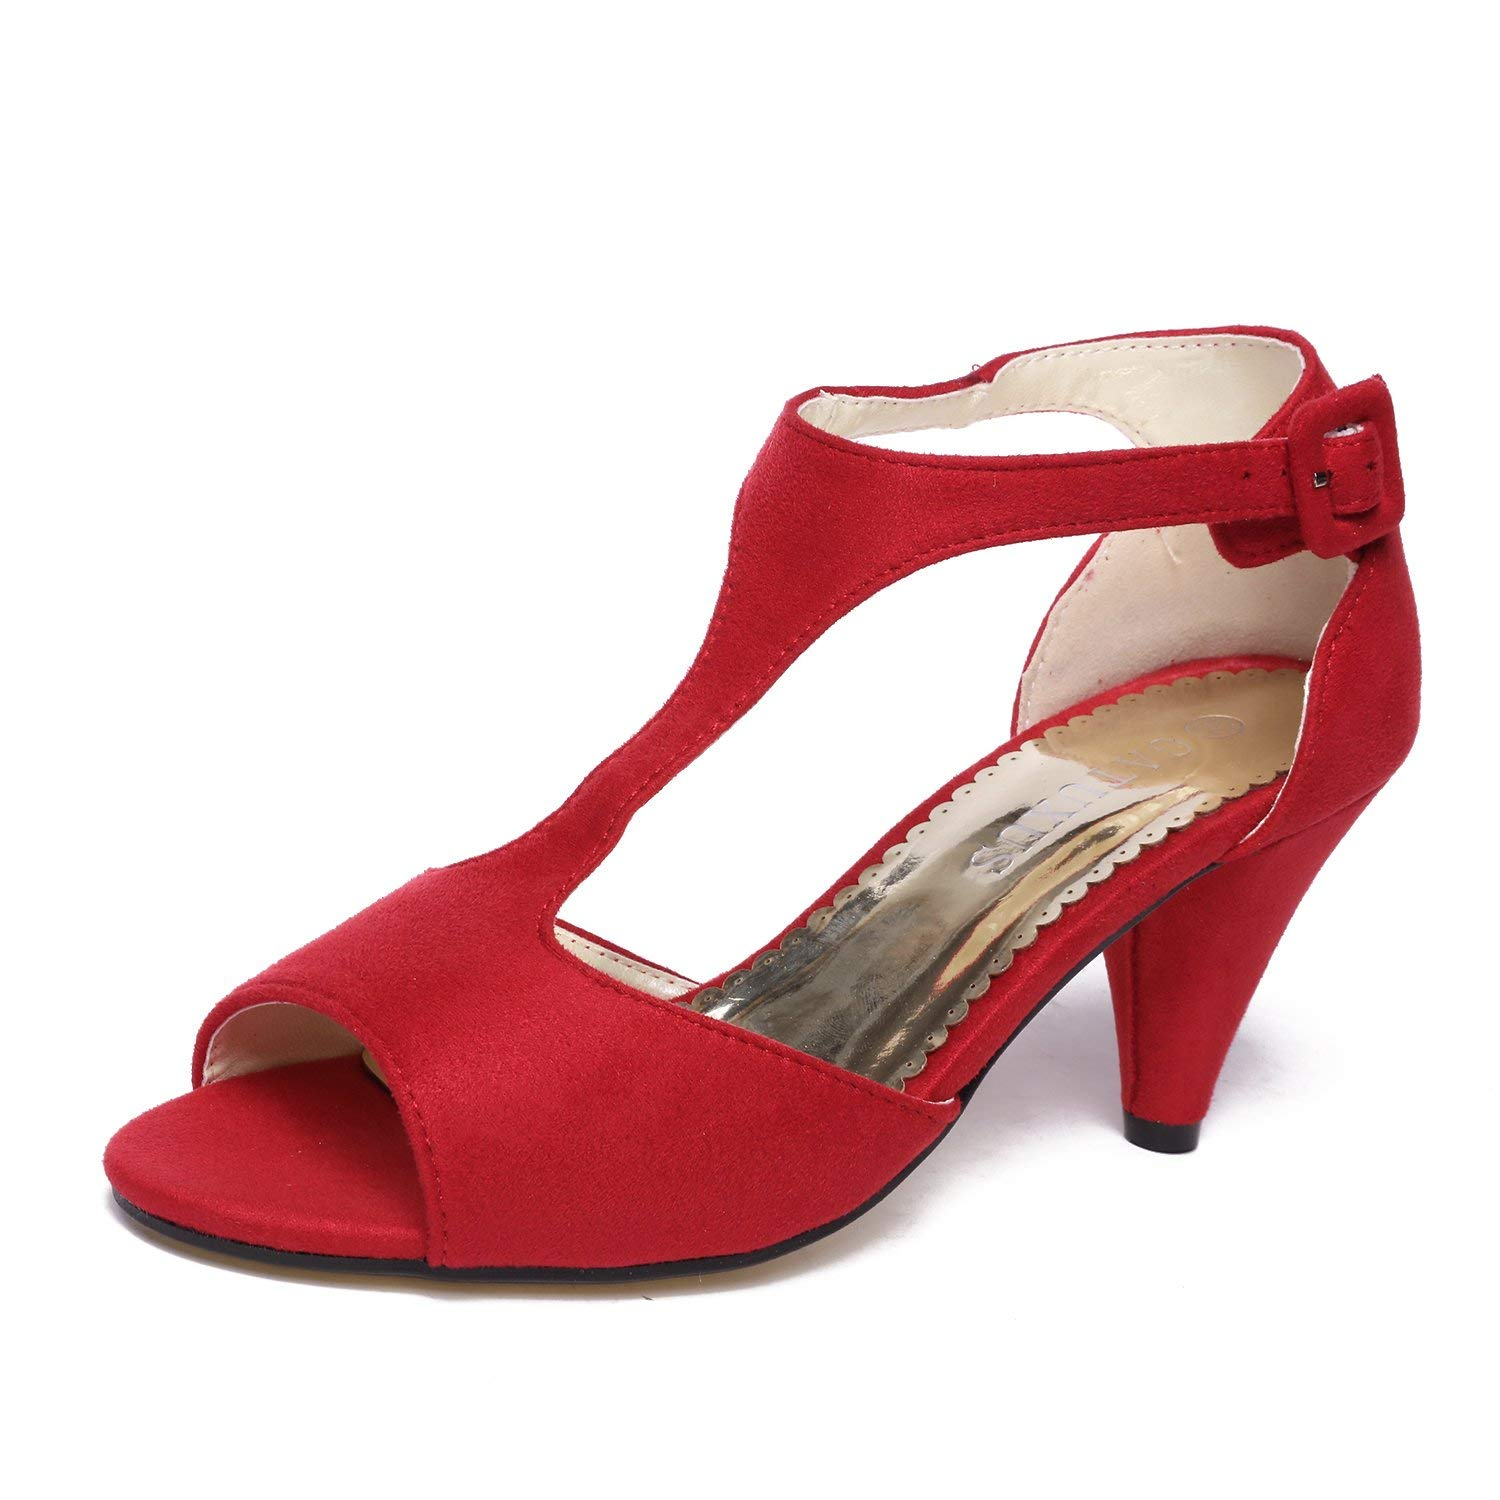 f8af970a5db Get Quotations · GATUXUS Women Open Toe Ankle T-Strap Kitten Heel Mary Jane  Shoes Mid Heel Sandals